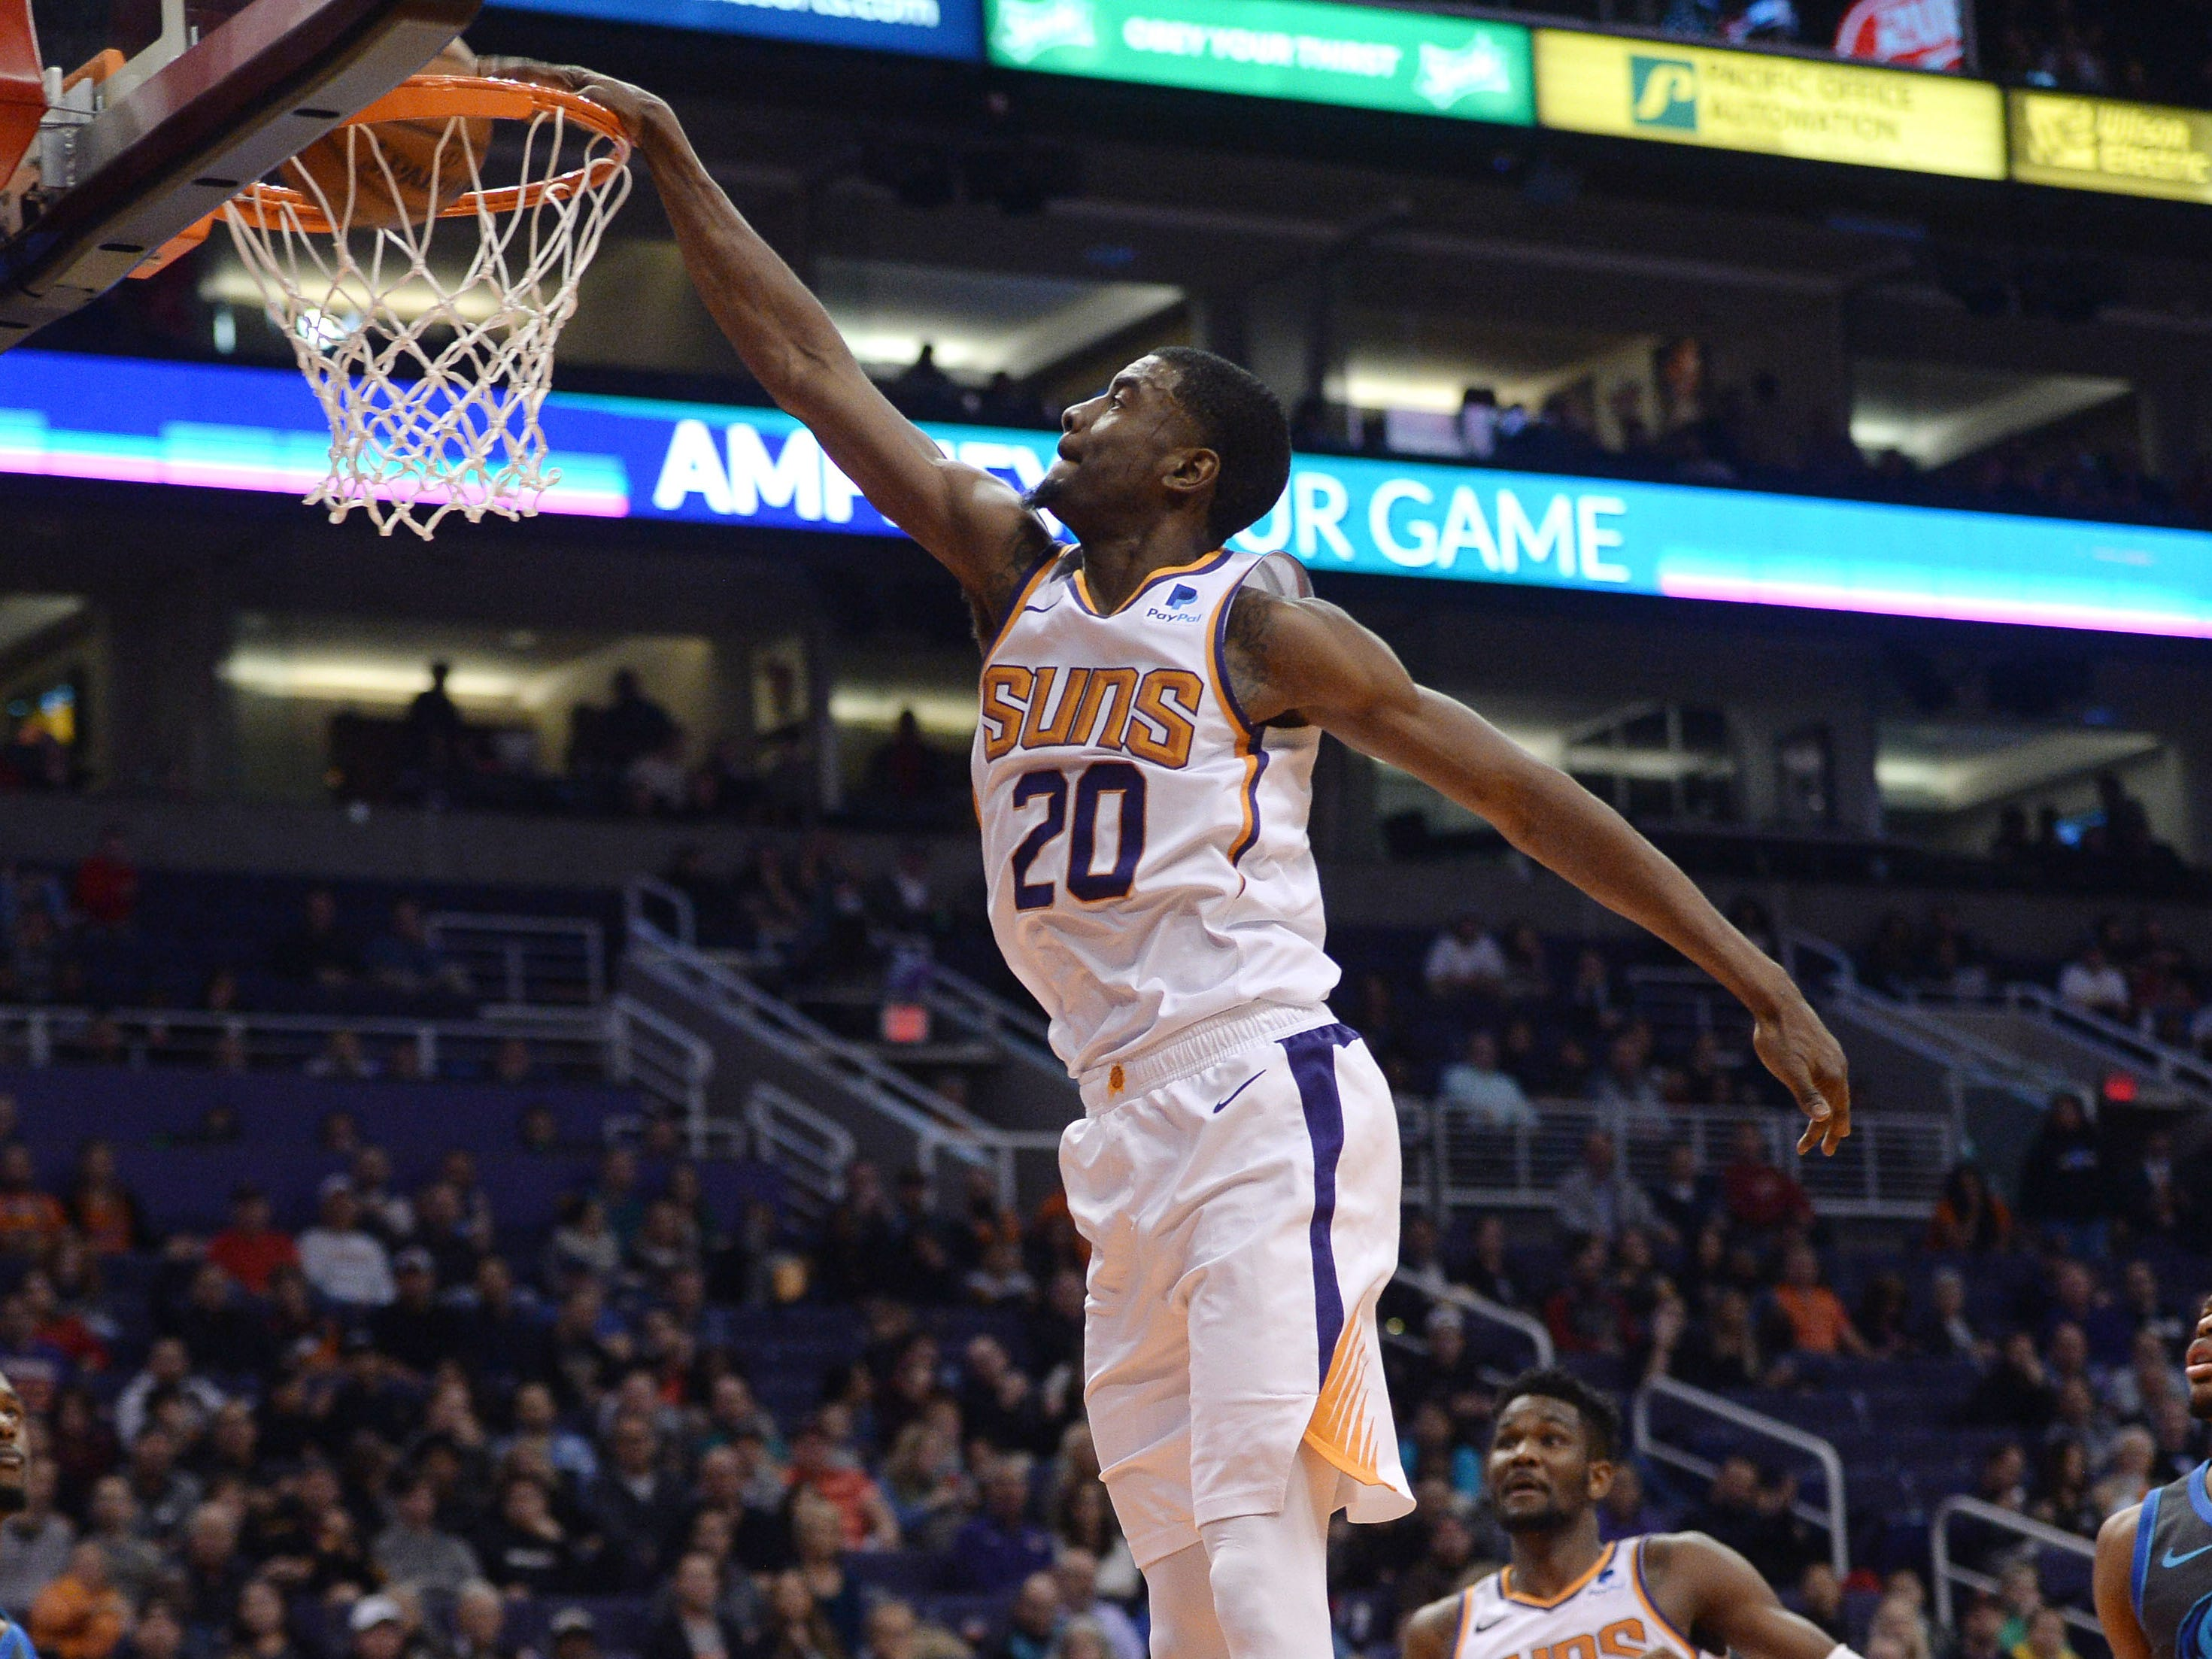 Dec. 13: Suns forward Josh Jackson throws down the one-handed flush with authority during the first half against the Mavericks in Phoenix.